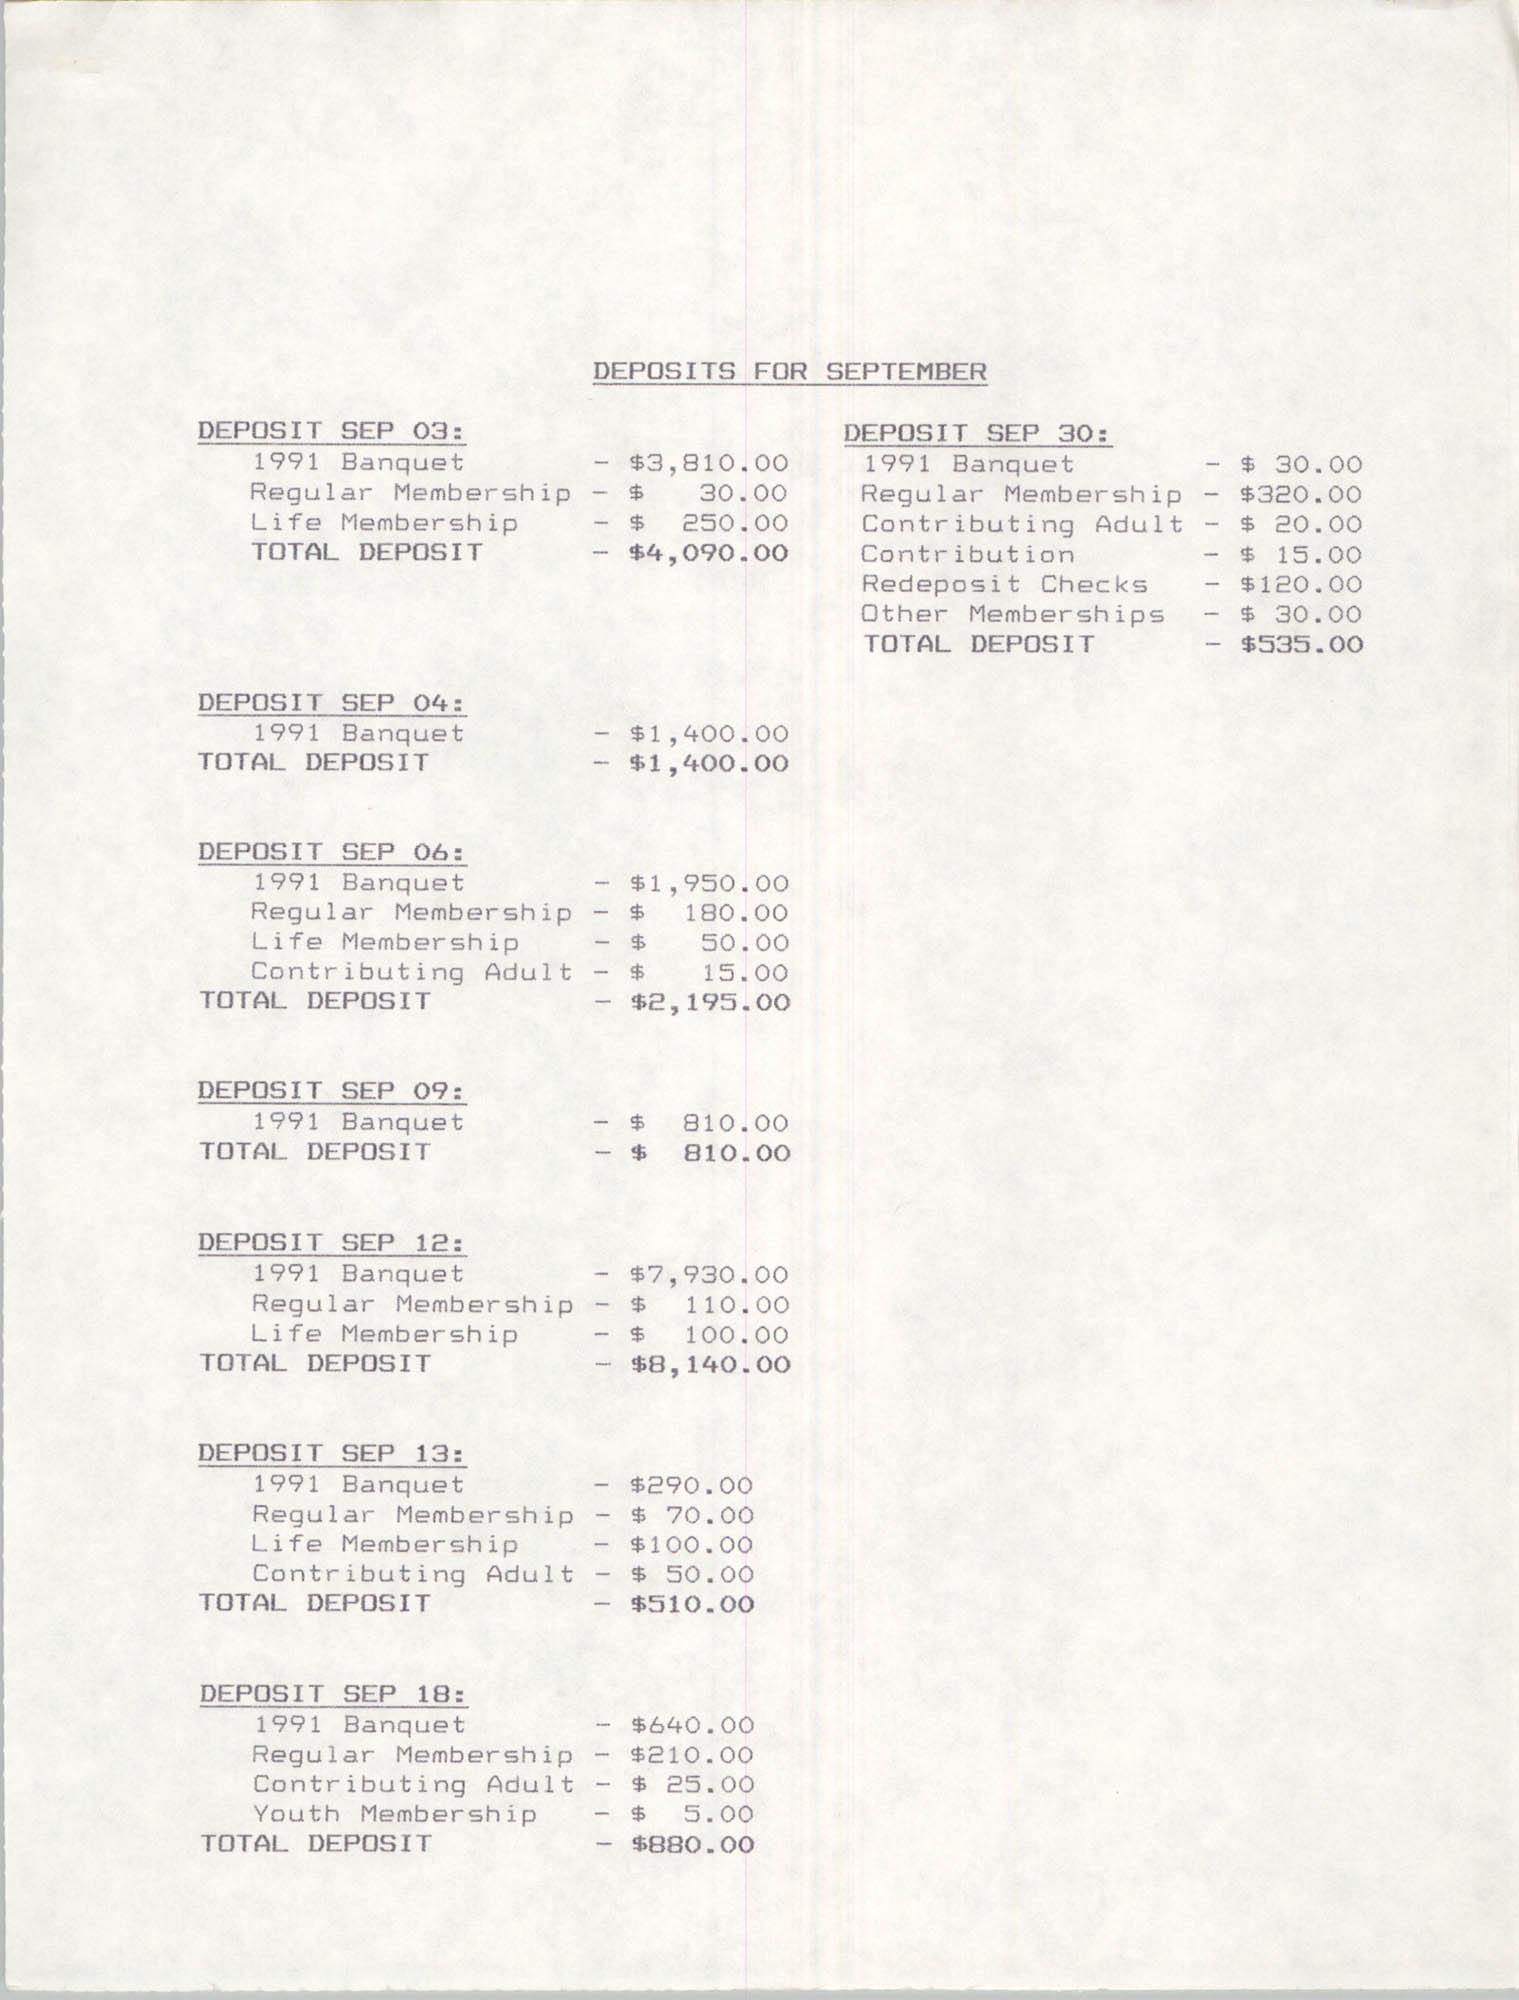 Charleston Branch of the NAACP Deposits for September 1991